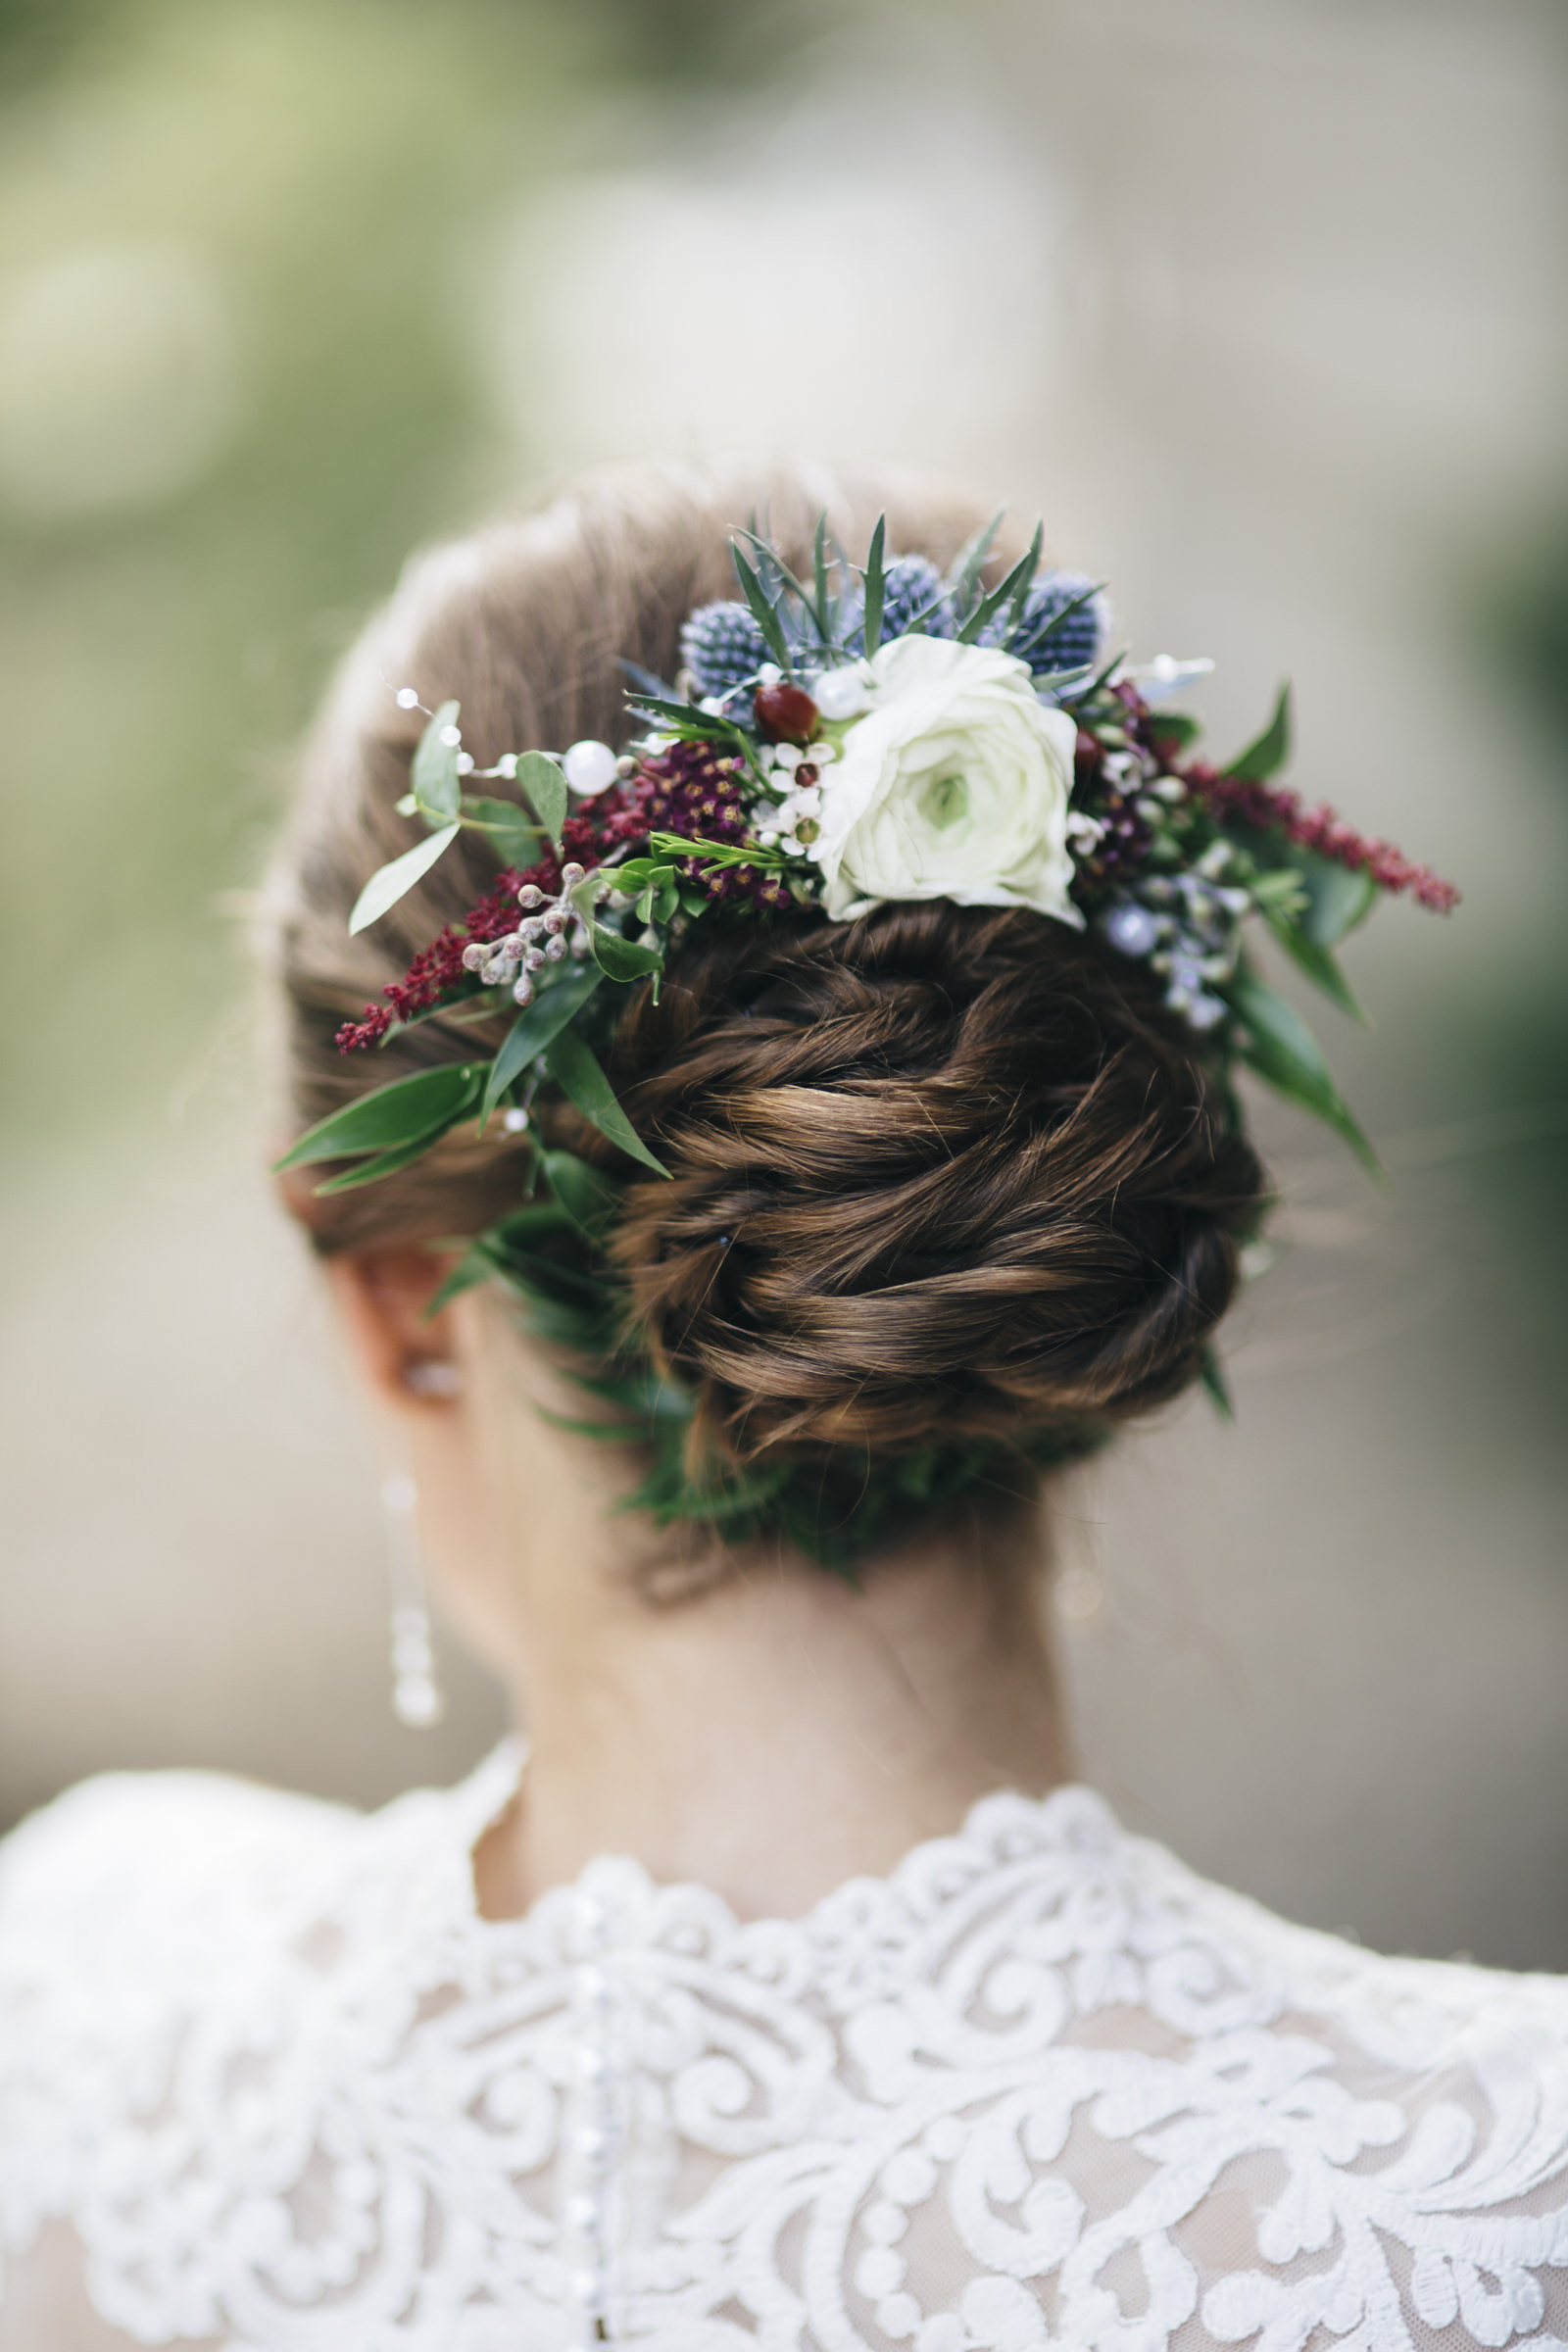 The bride's floral wedding crown up-do for her wedding ceremony